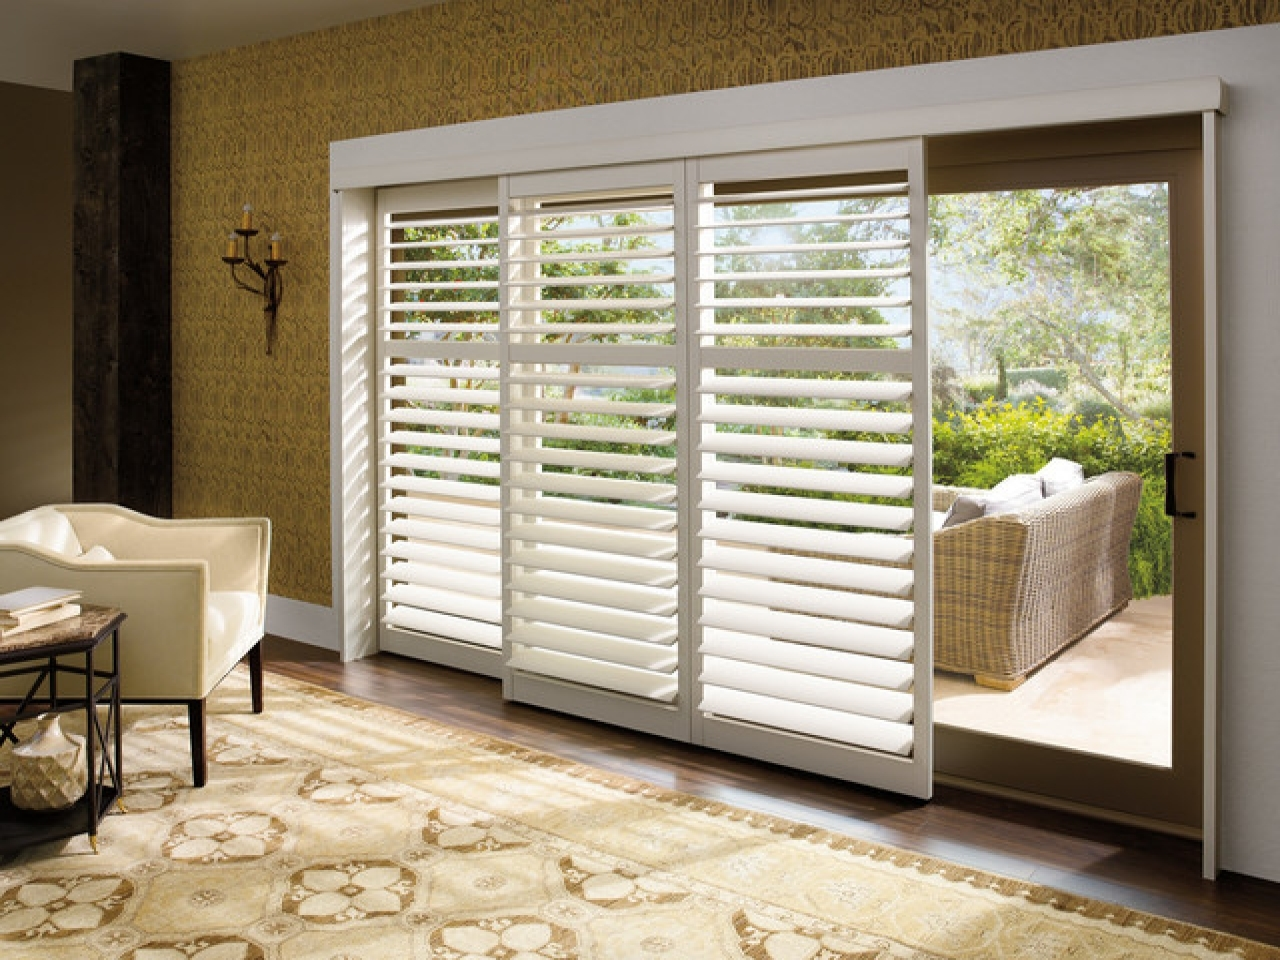 Window Shades For Sliding Patio Doorswindow treatments for sliding glass doors ideas tips